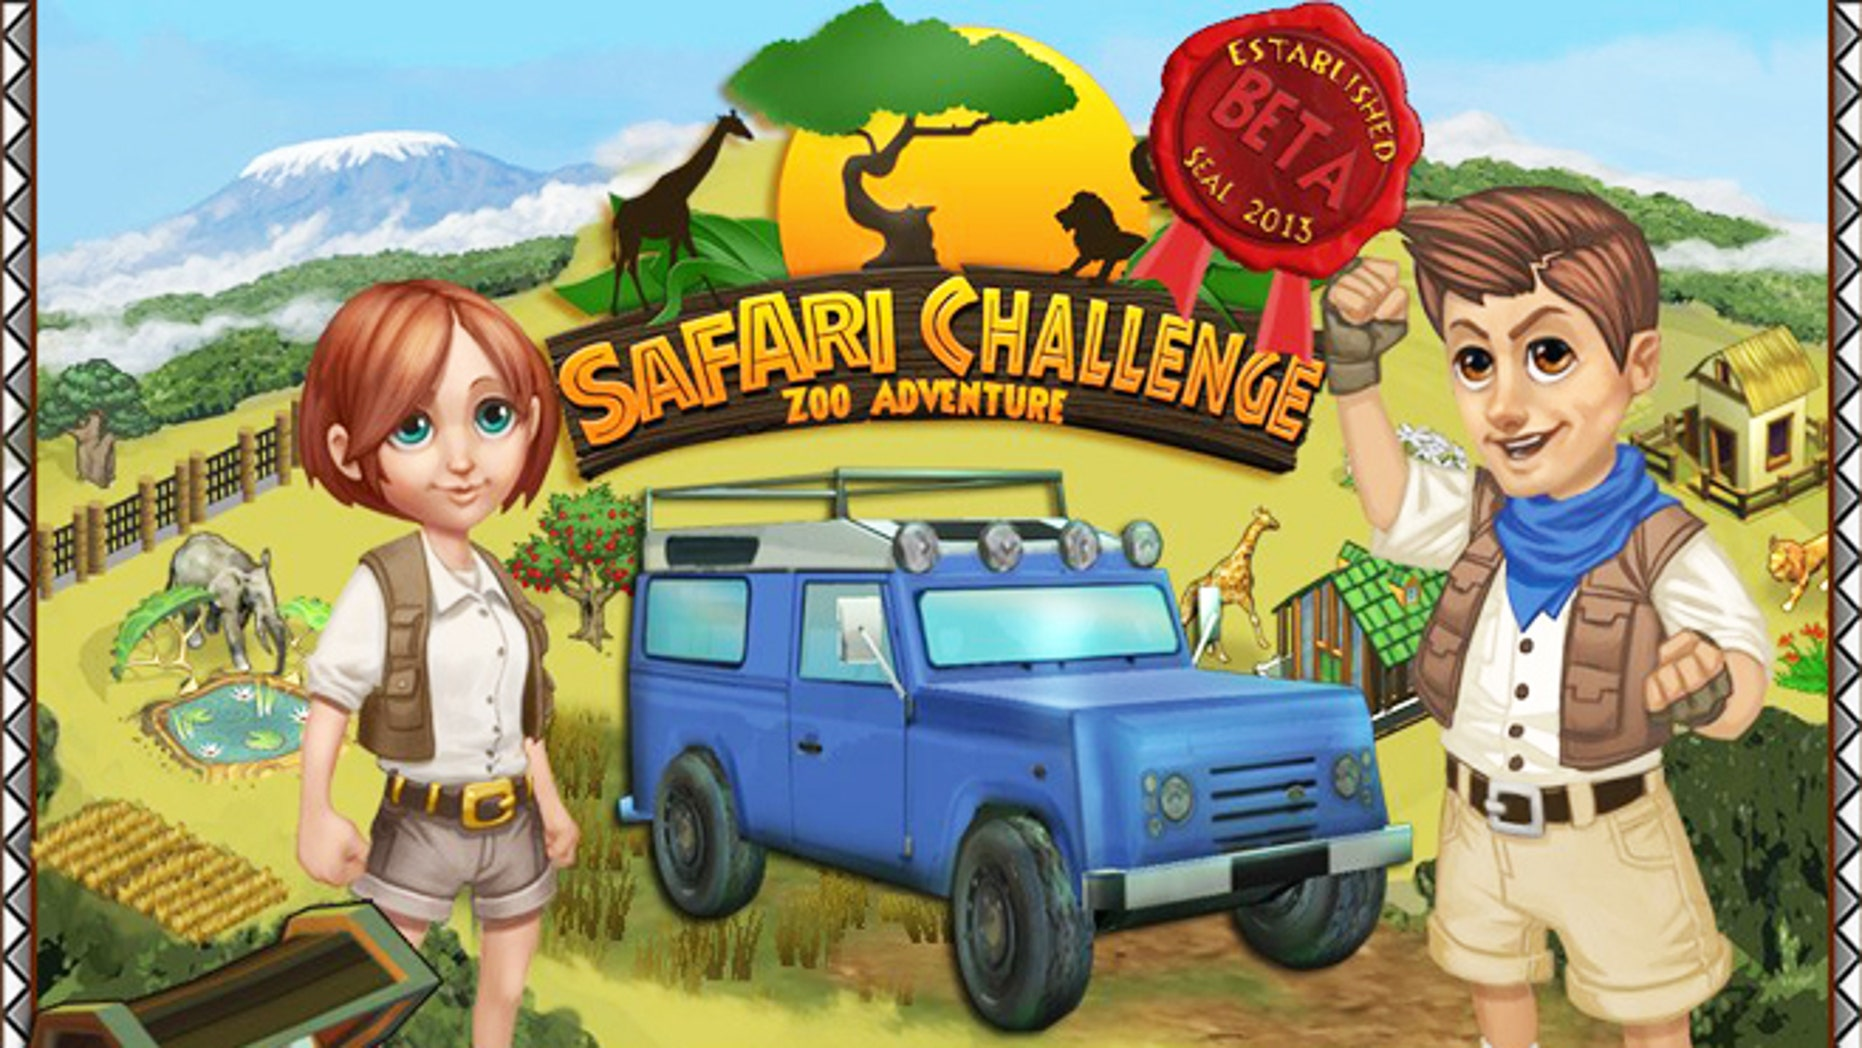 Safari Challenge marries social gaming with philanthropy, helping fund initiatives in rural African communities where fresh water wells, school supplies, playgrounds and homes for orphans are desperately needed.